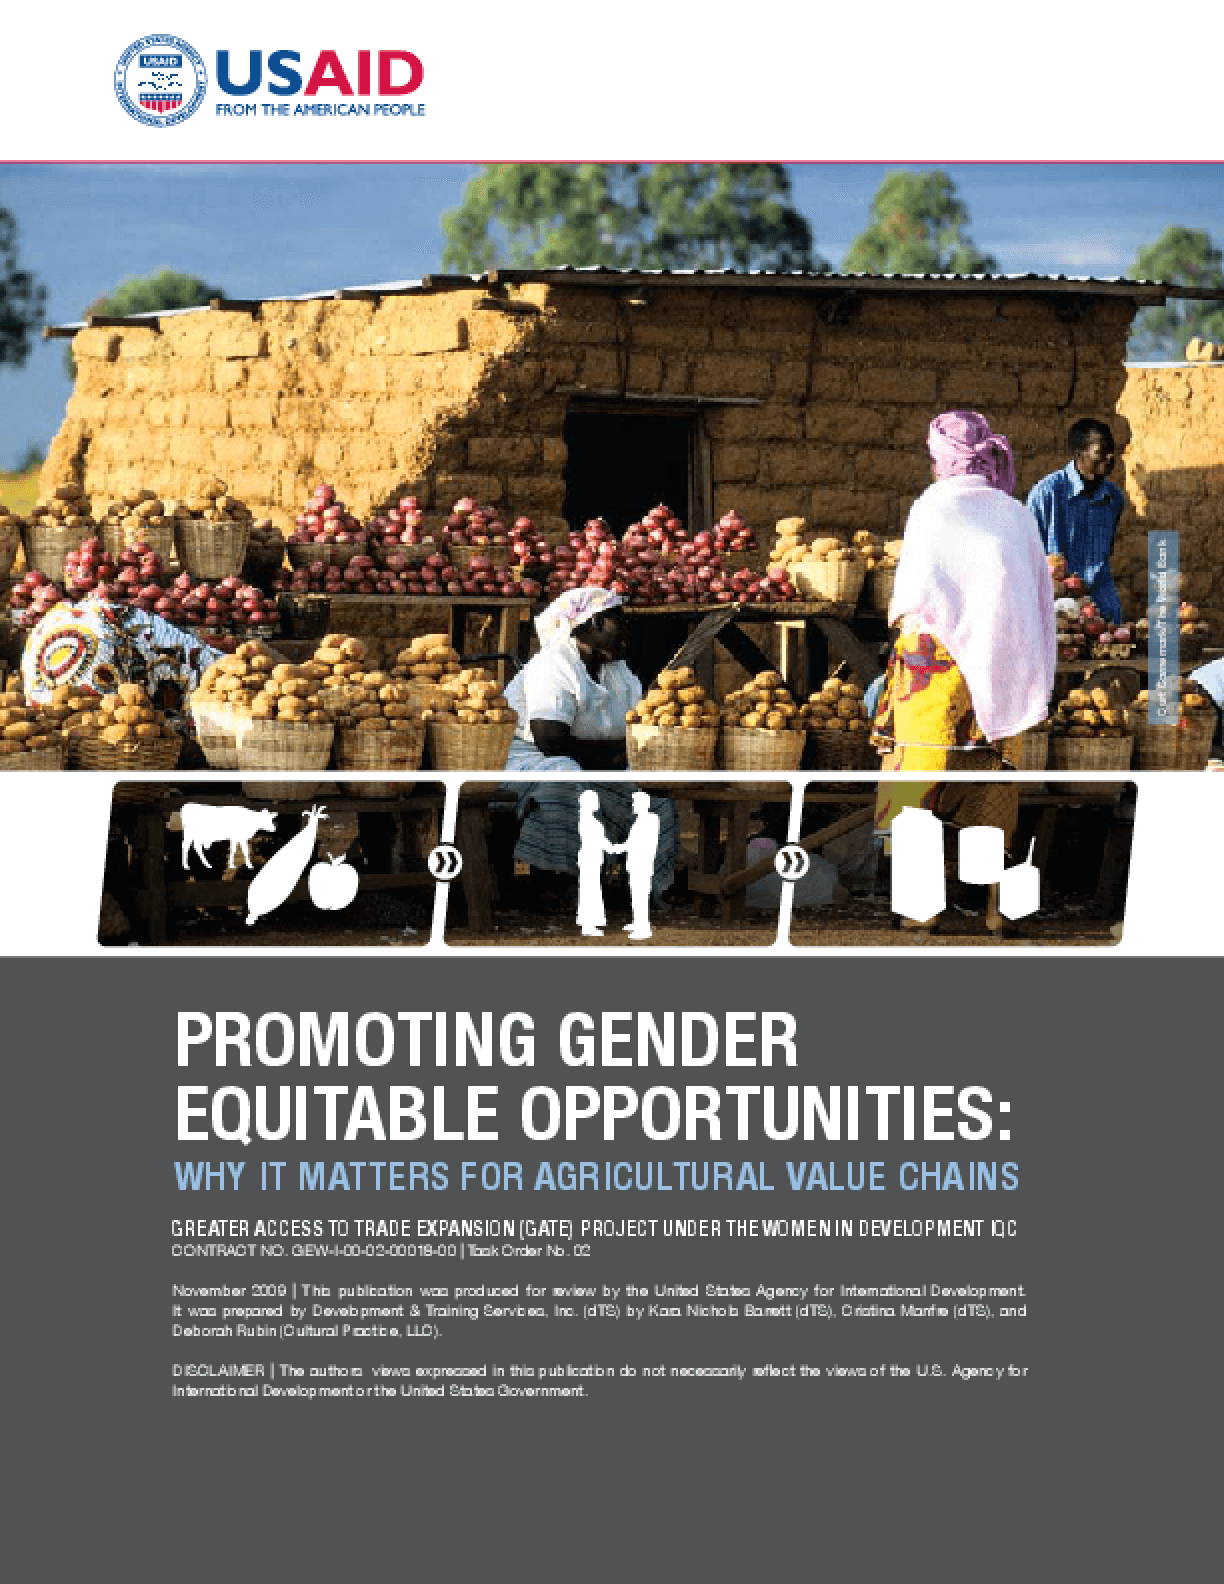 Promoting Gender Equitable Opportunities: Why It Matters for Agricultural Value Chains